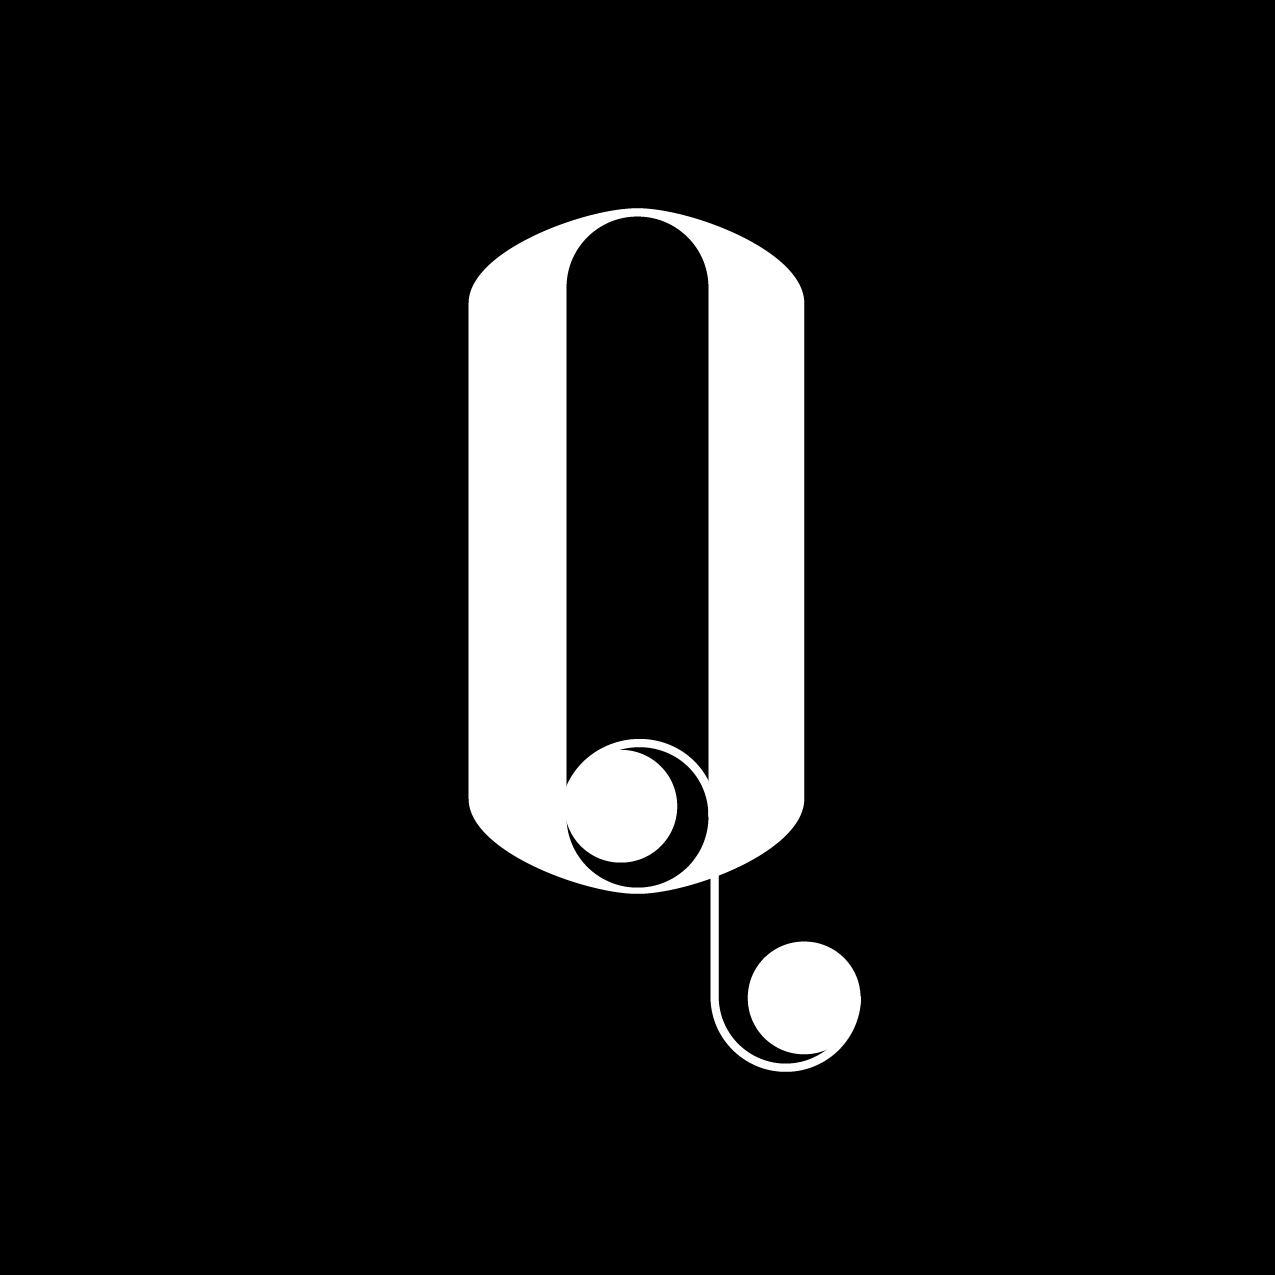 Letter Q6 Design by Furia